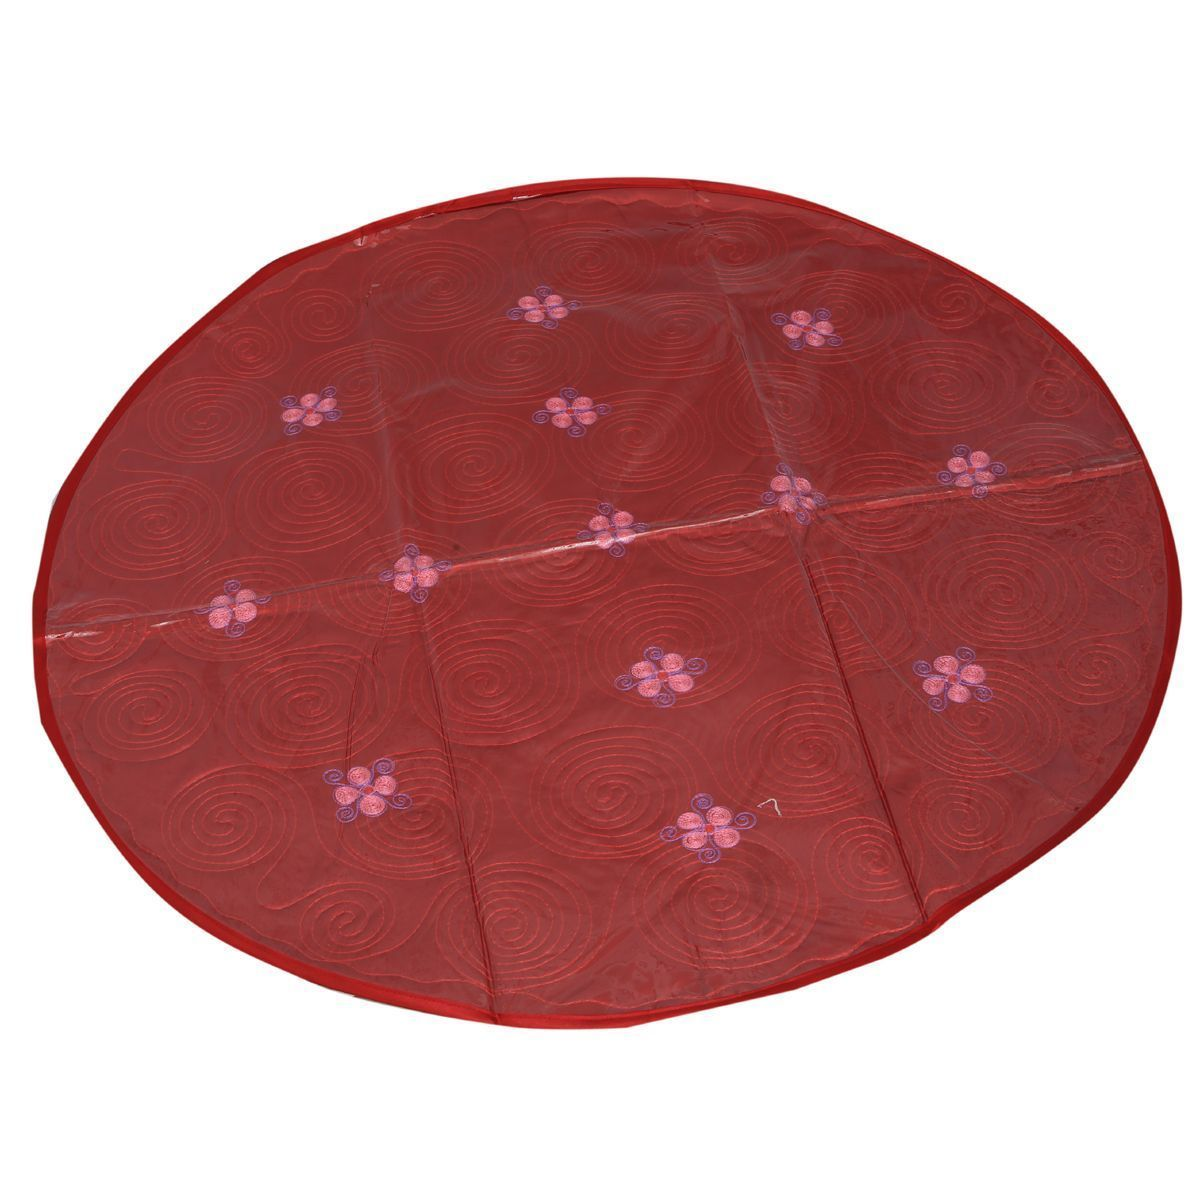 "Kuber Industriesâ""¢ Designer Food Mat/ Bed Server Quilted Satin Material (Maroon) (Exclusive Design) KI19377"